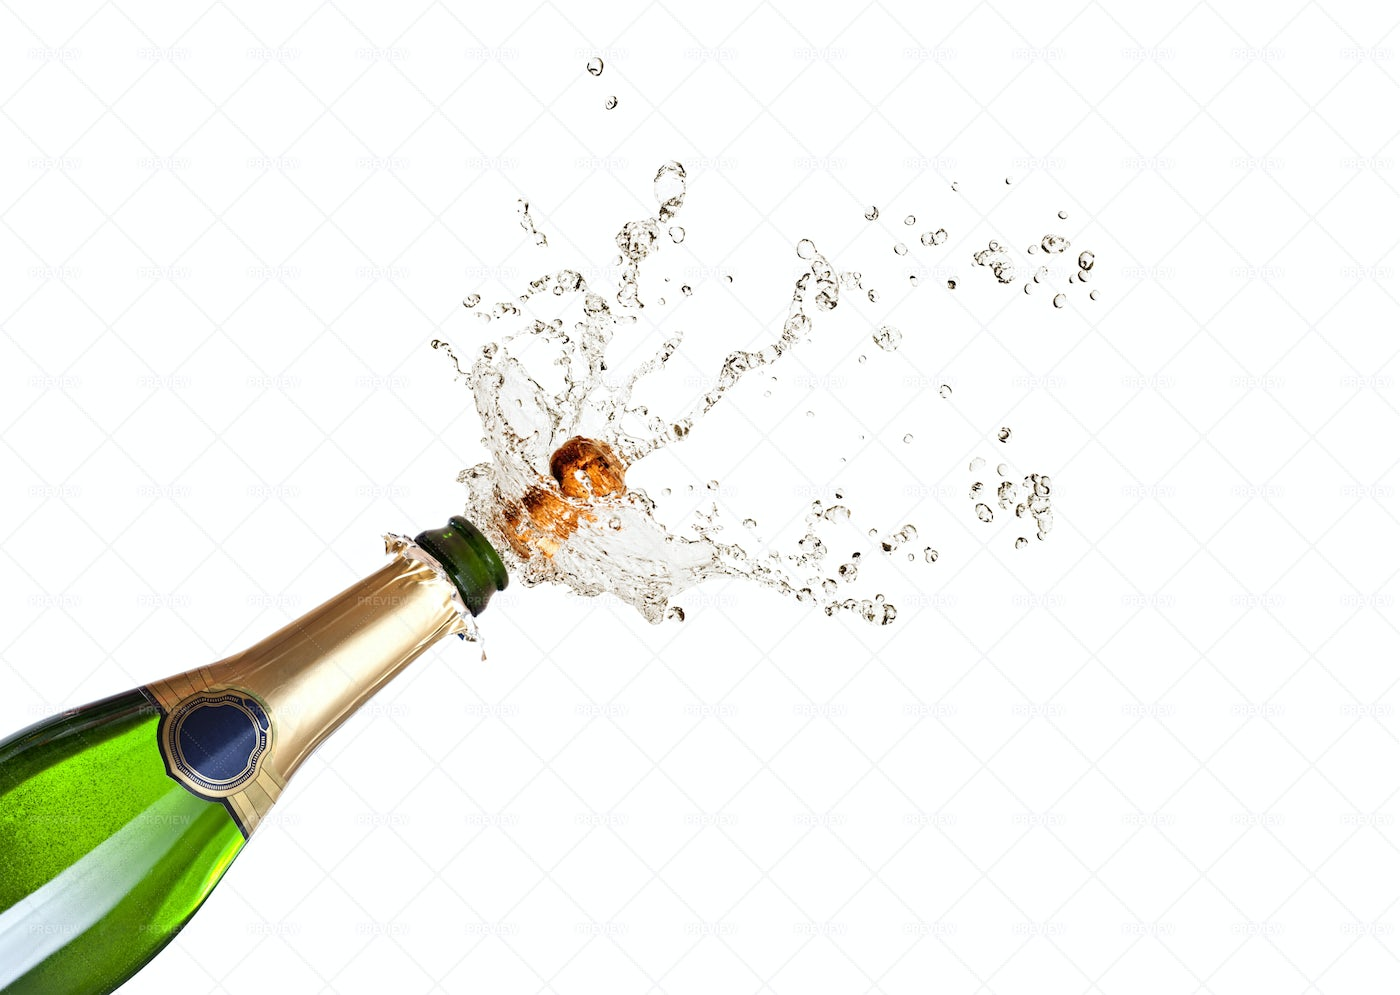 Popping Champagne Cork On White: Stock Photos